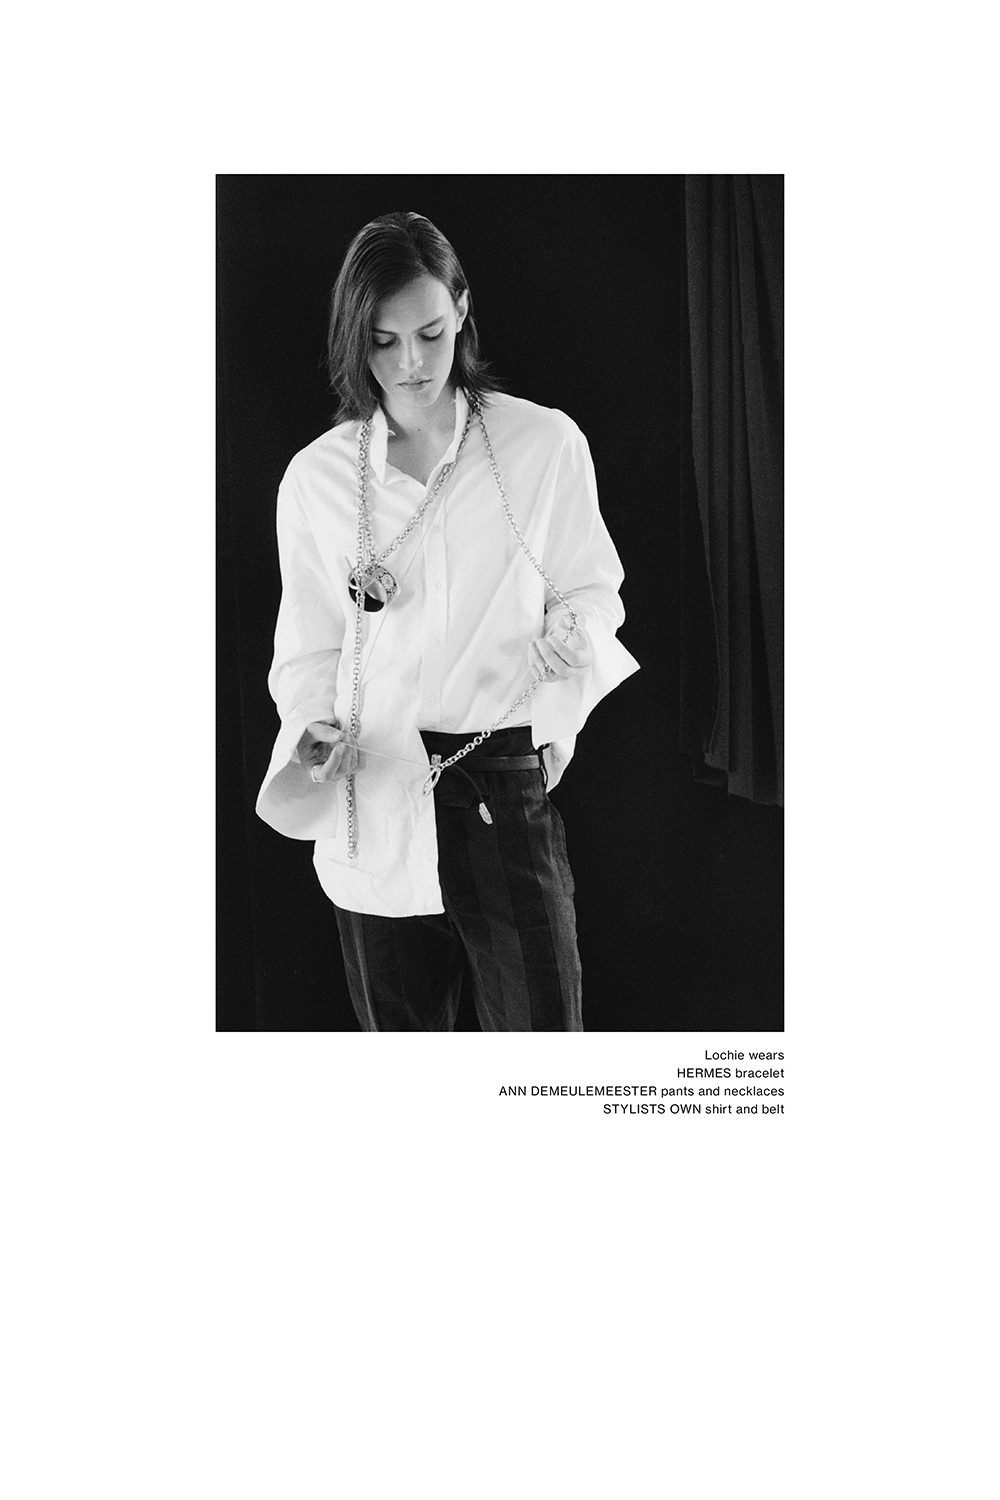 Lochie Mitchell wearing Ann Demeulemeester and Hermes for Astrophe Homme fashion editorial by Aaron VIII